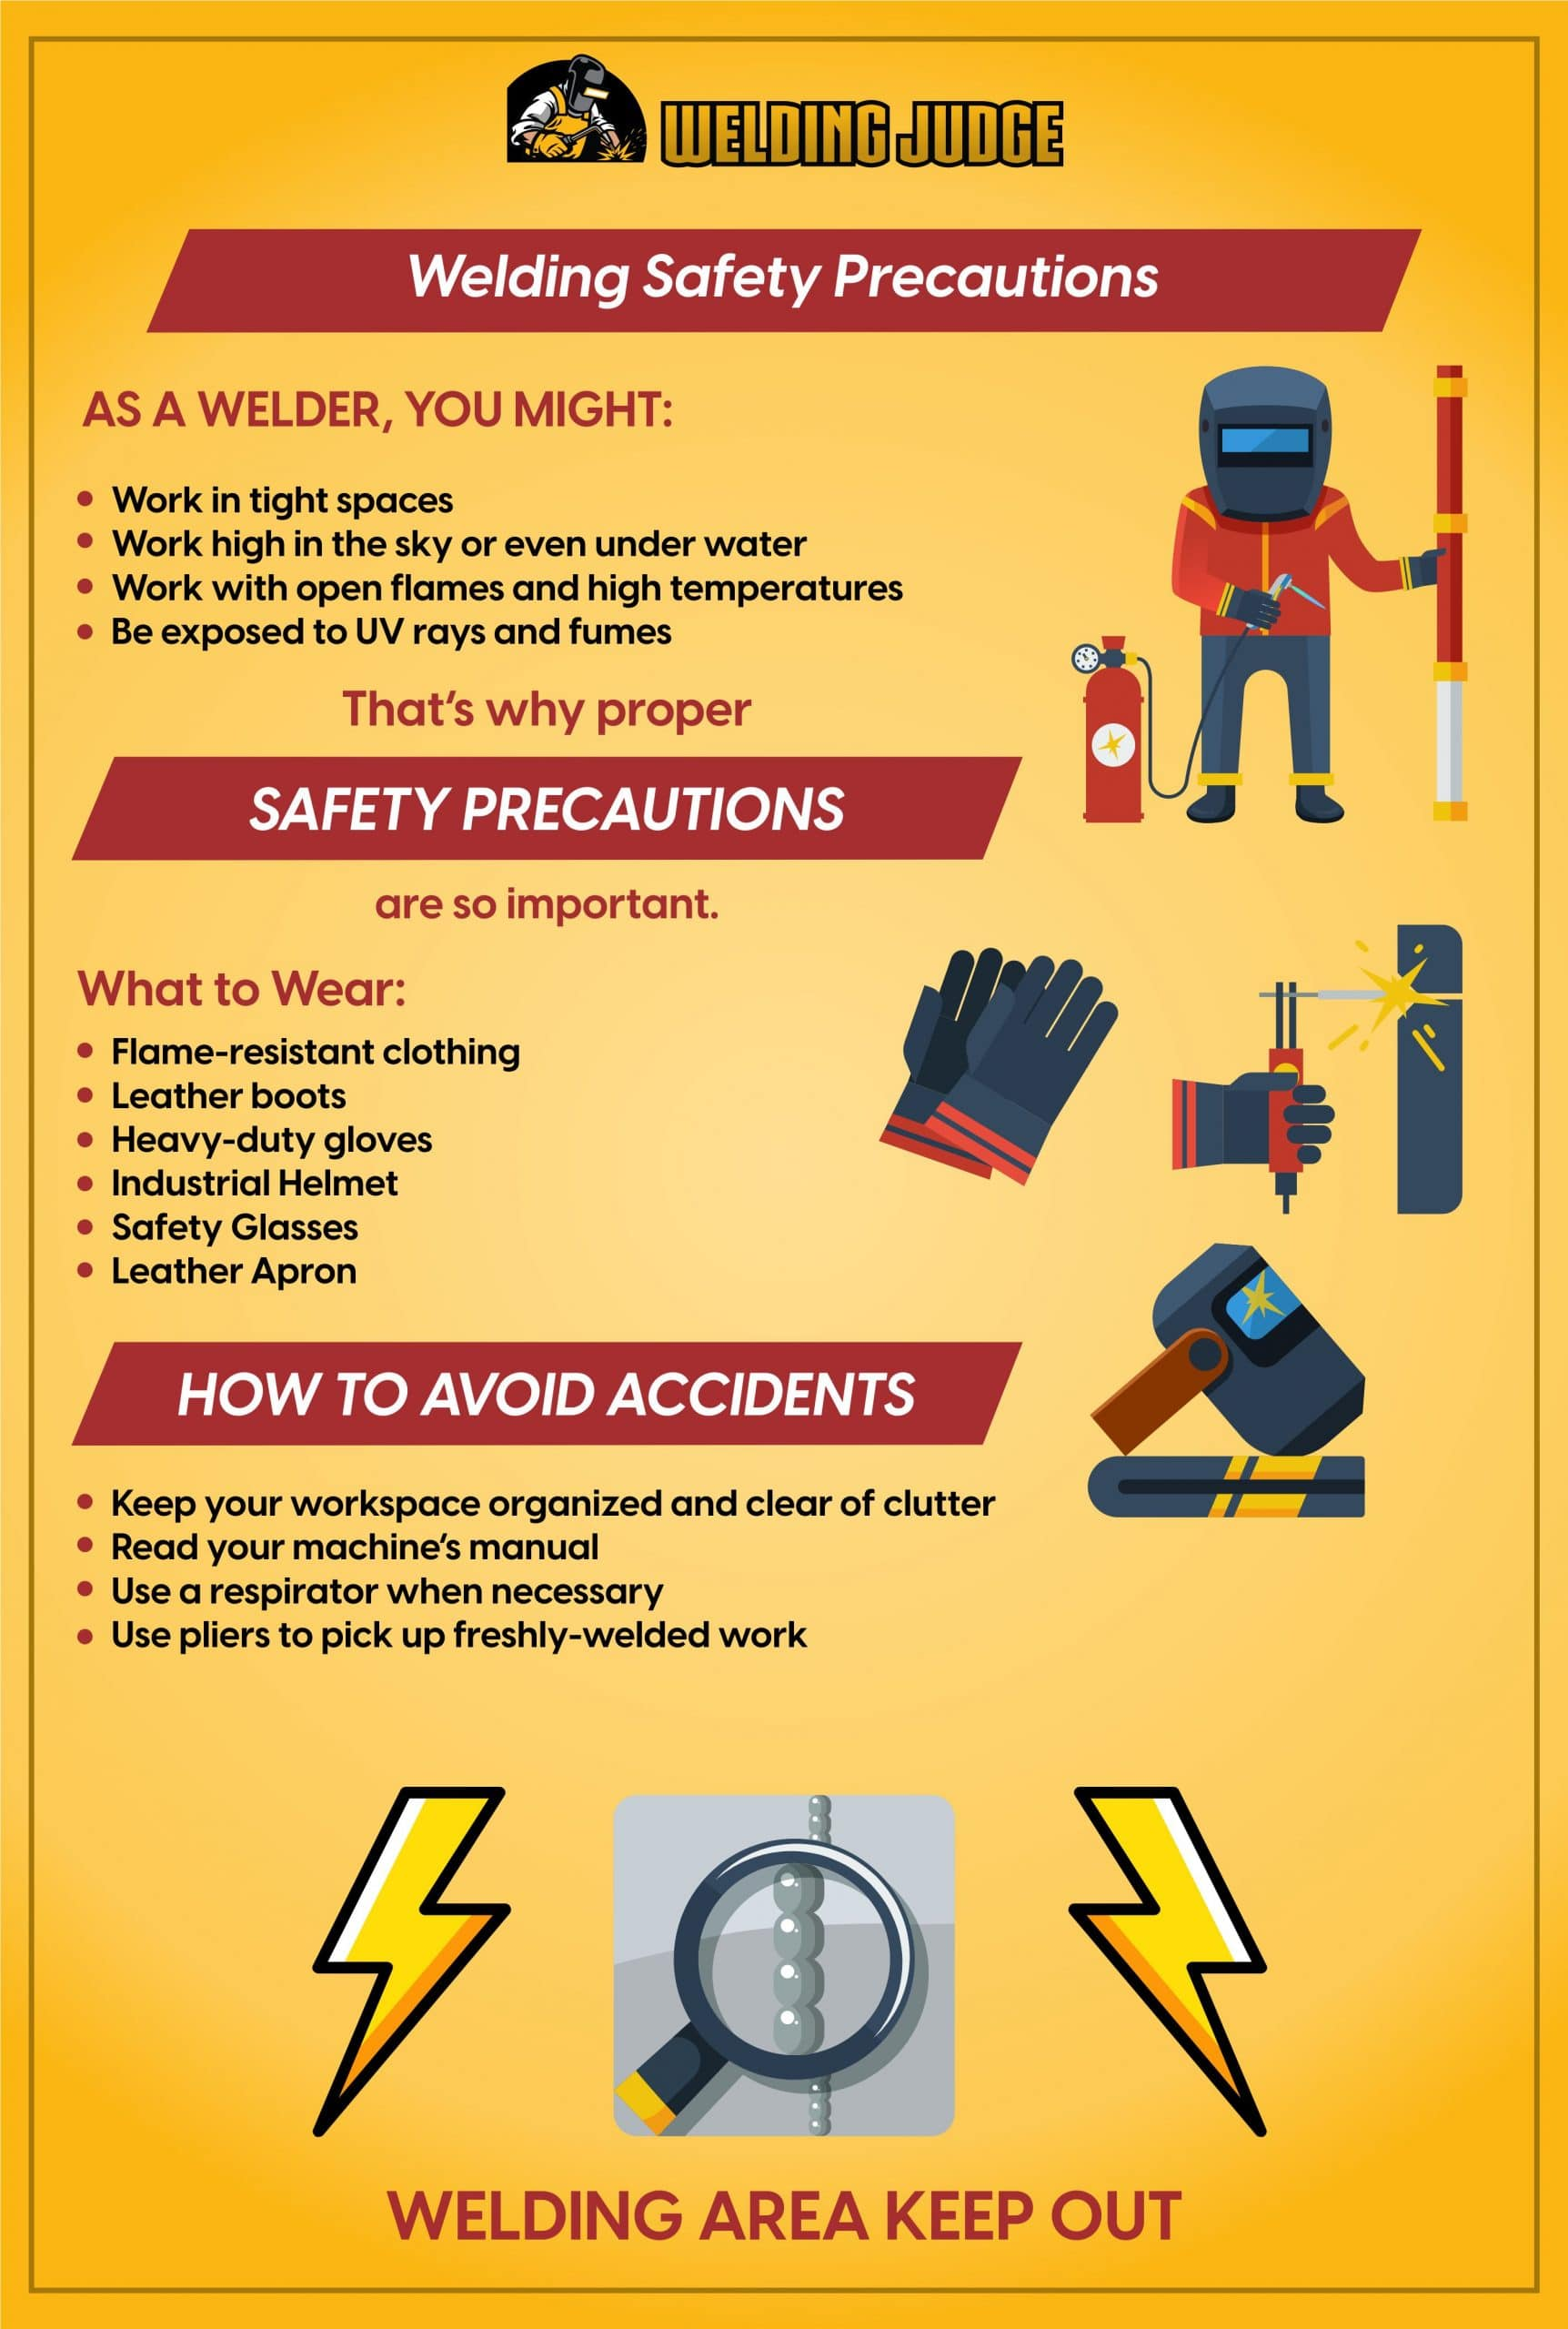 Welding Safety Precautions Guide Infograph